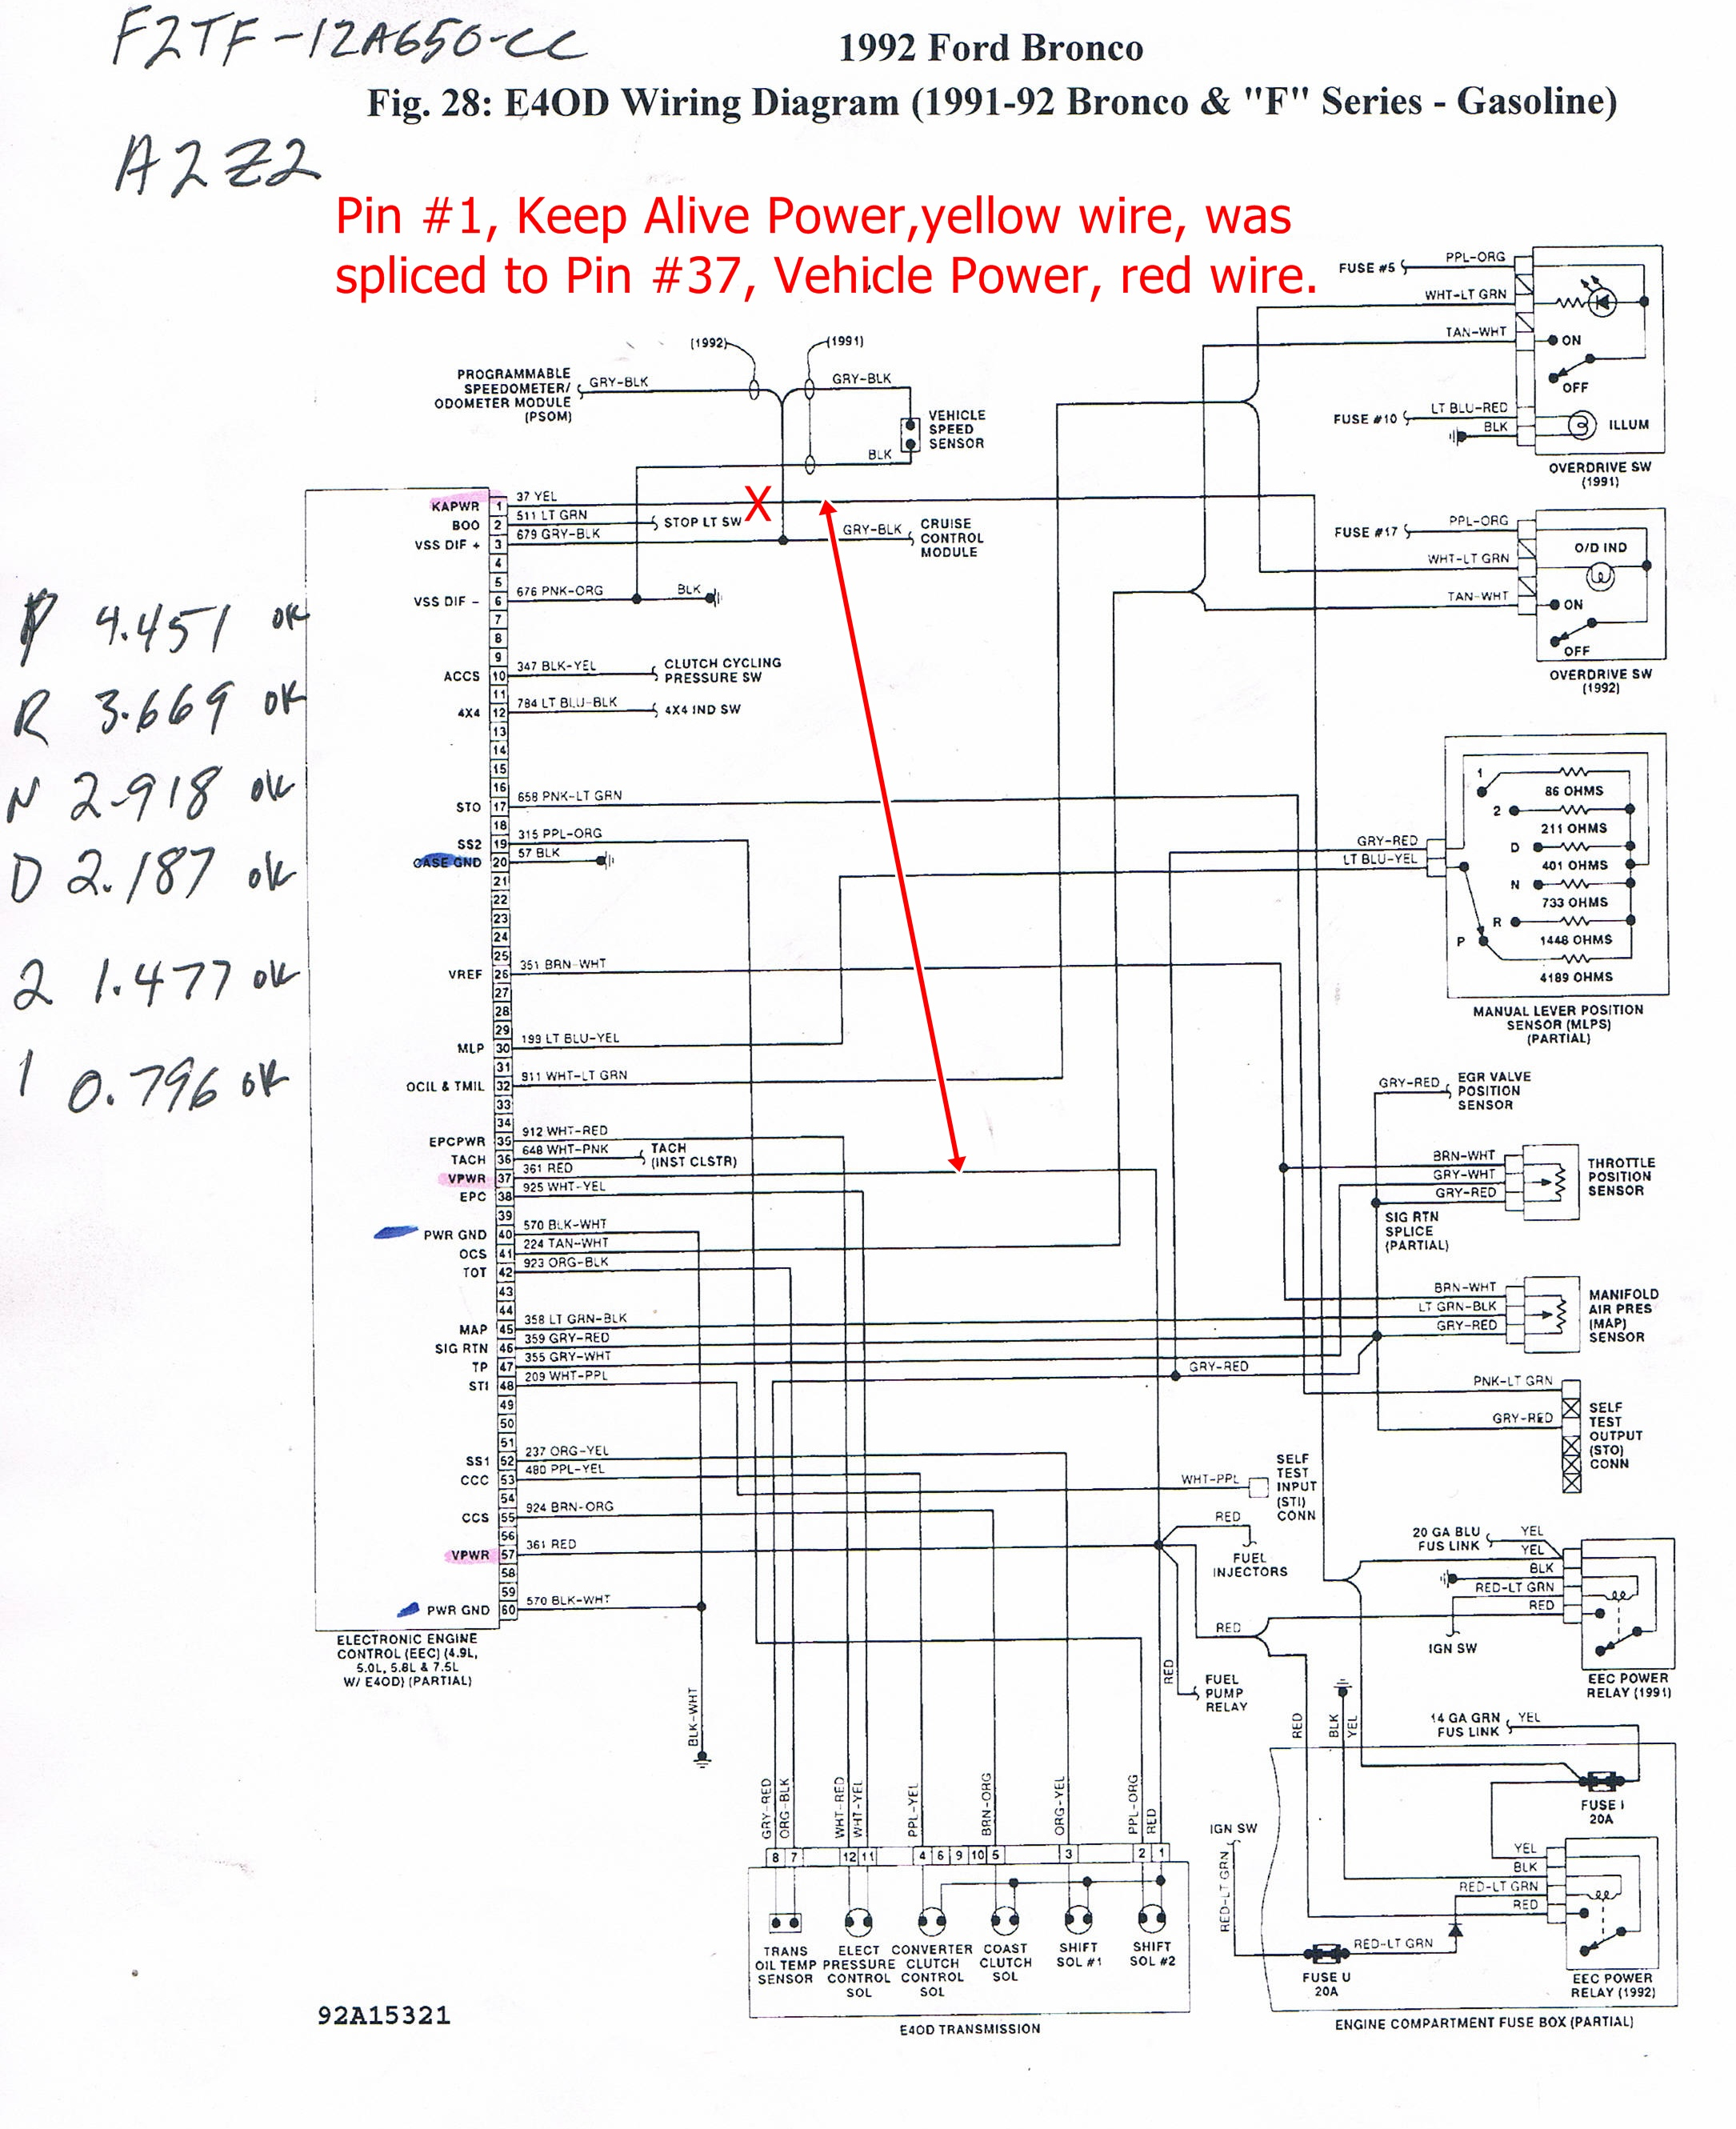 International 4900 Wiring Harness Starting Know About Diagram 07 Tundra Fuel Pump Wire January 2013 The Transletter